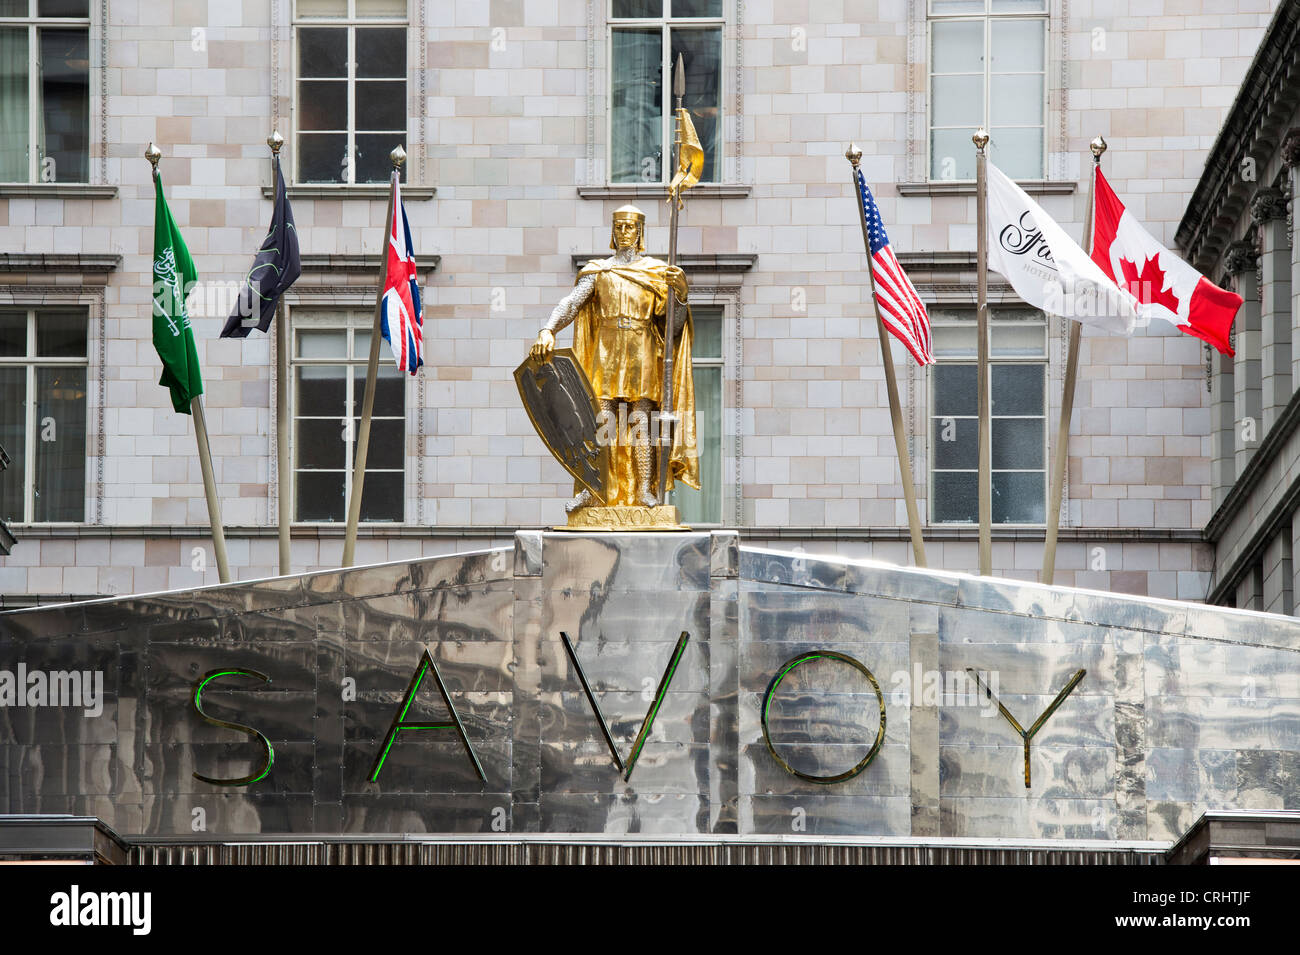 Savoy Hotel frontage. The Strand. London, England - Stock Image